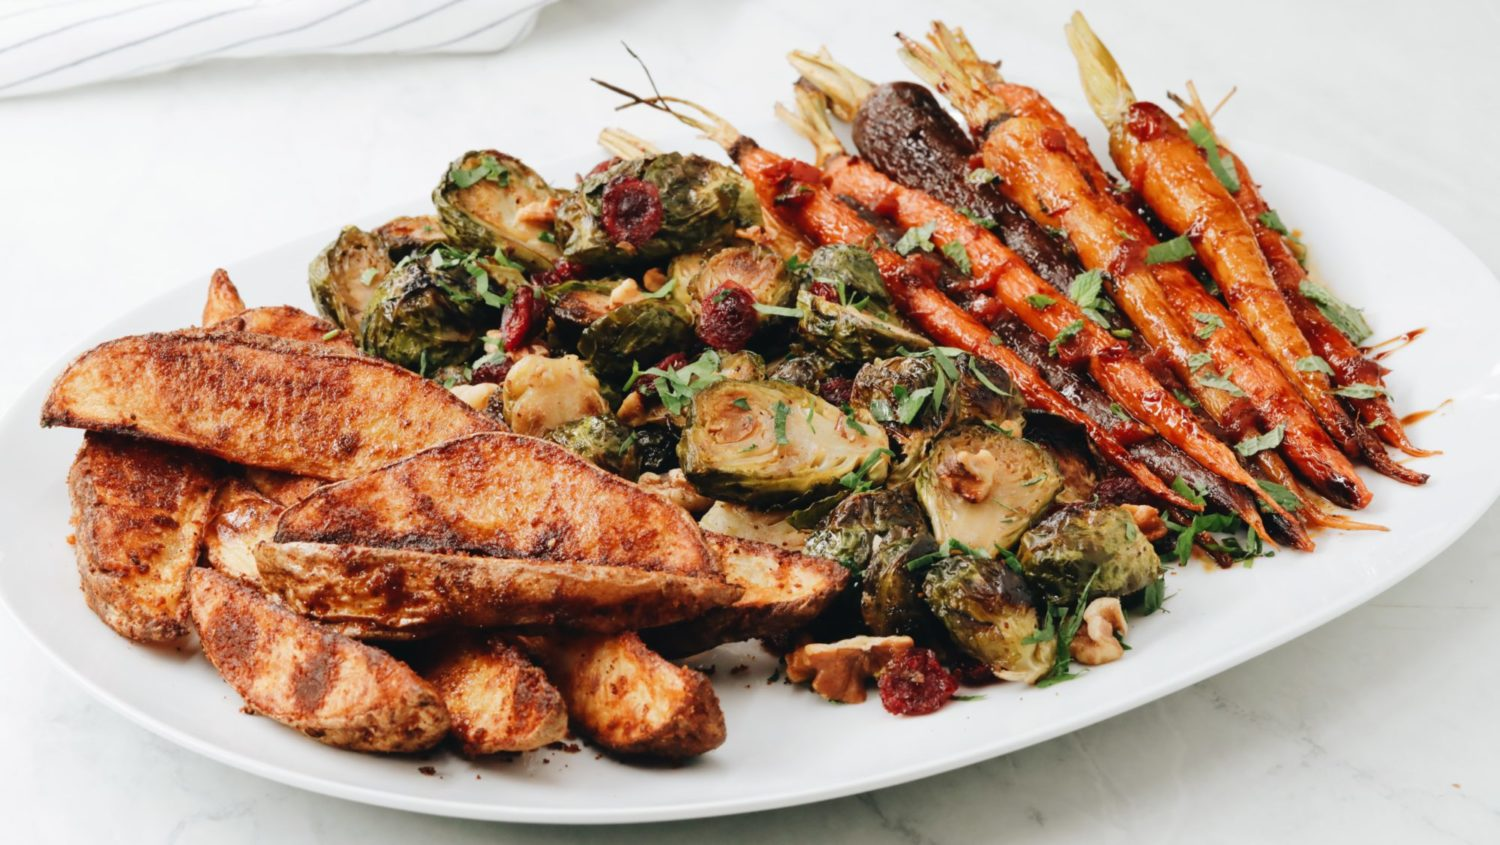 3 Roasted Vegetable Recipes You Won't Want to Share